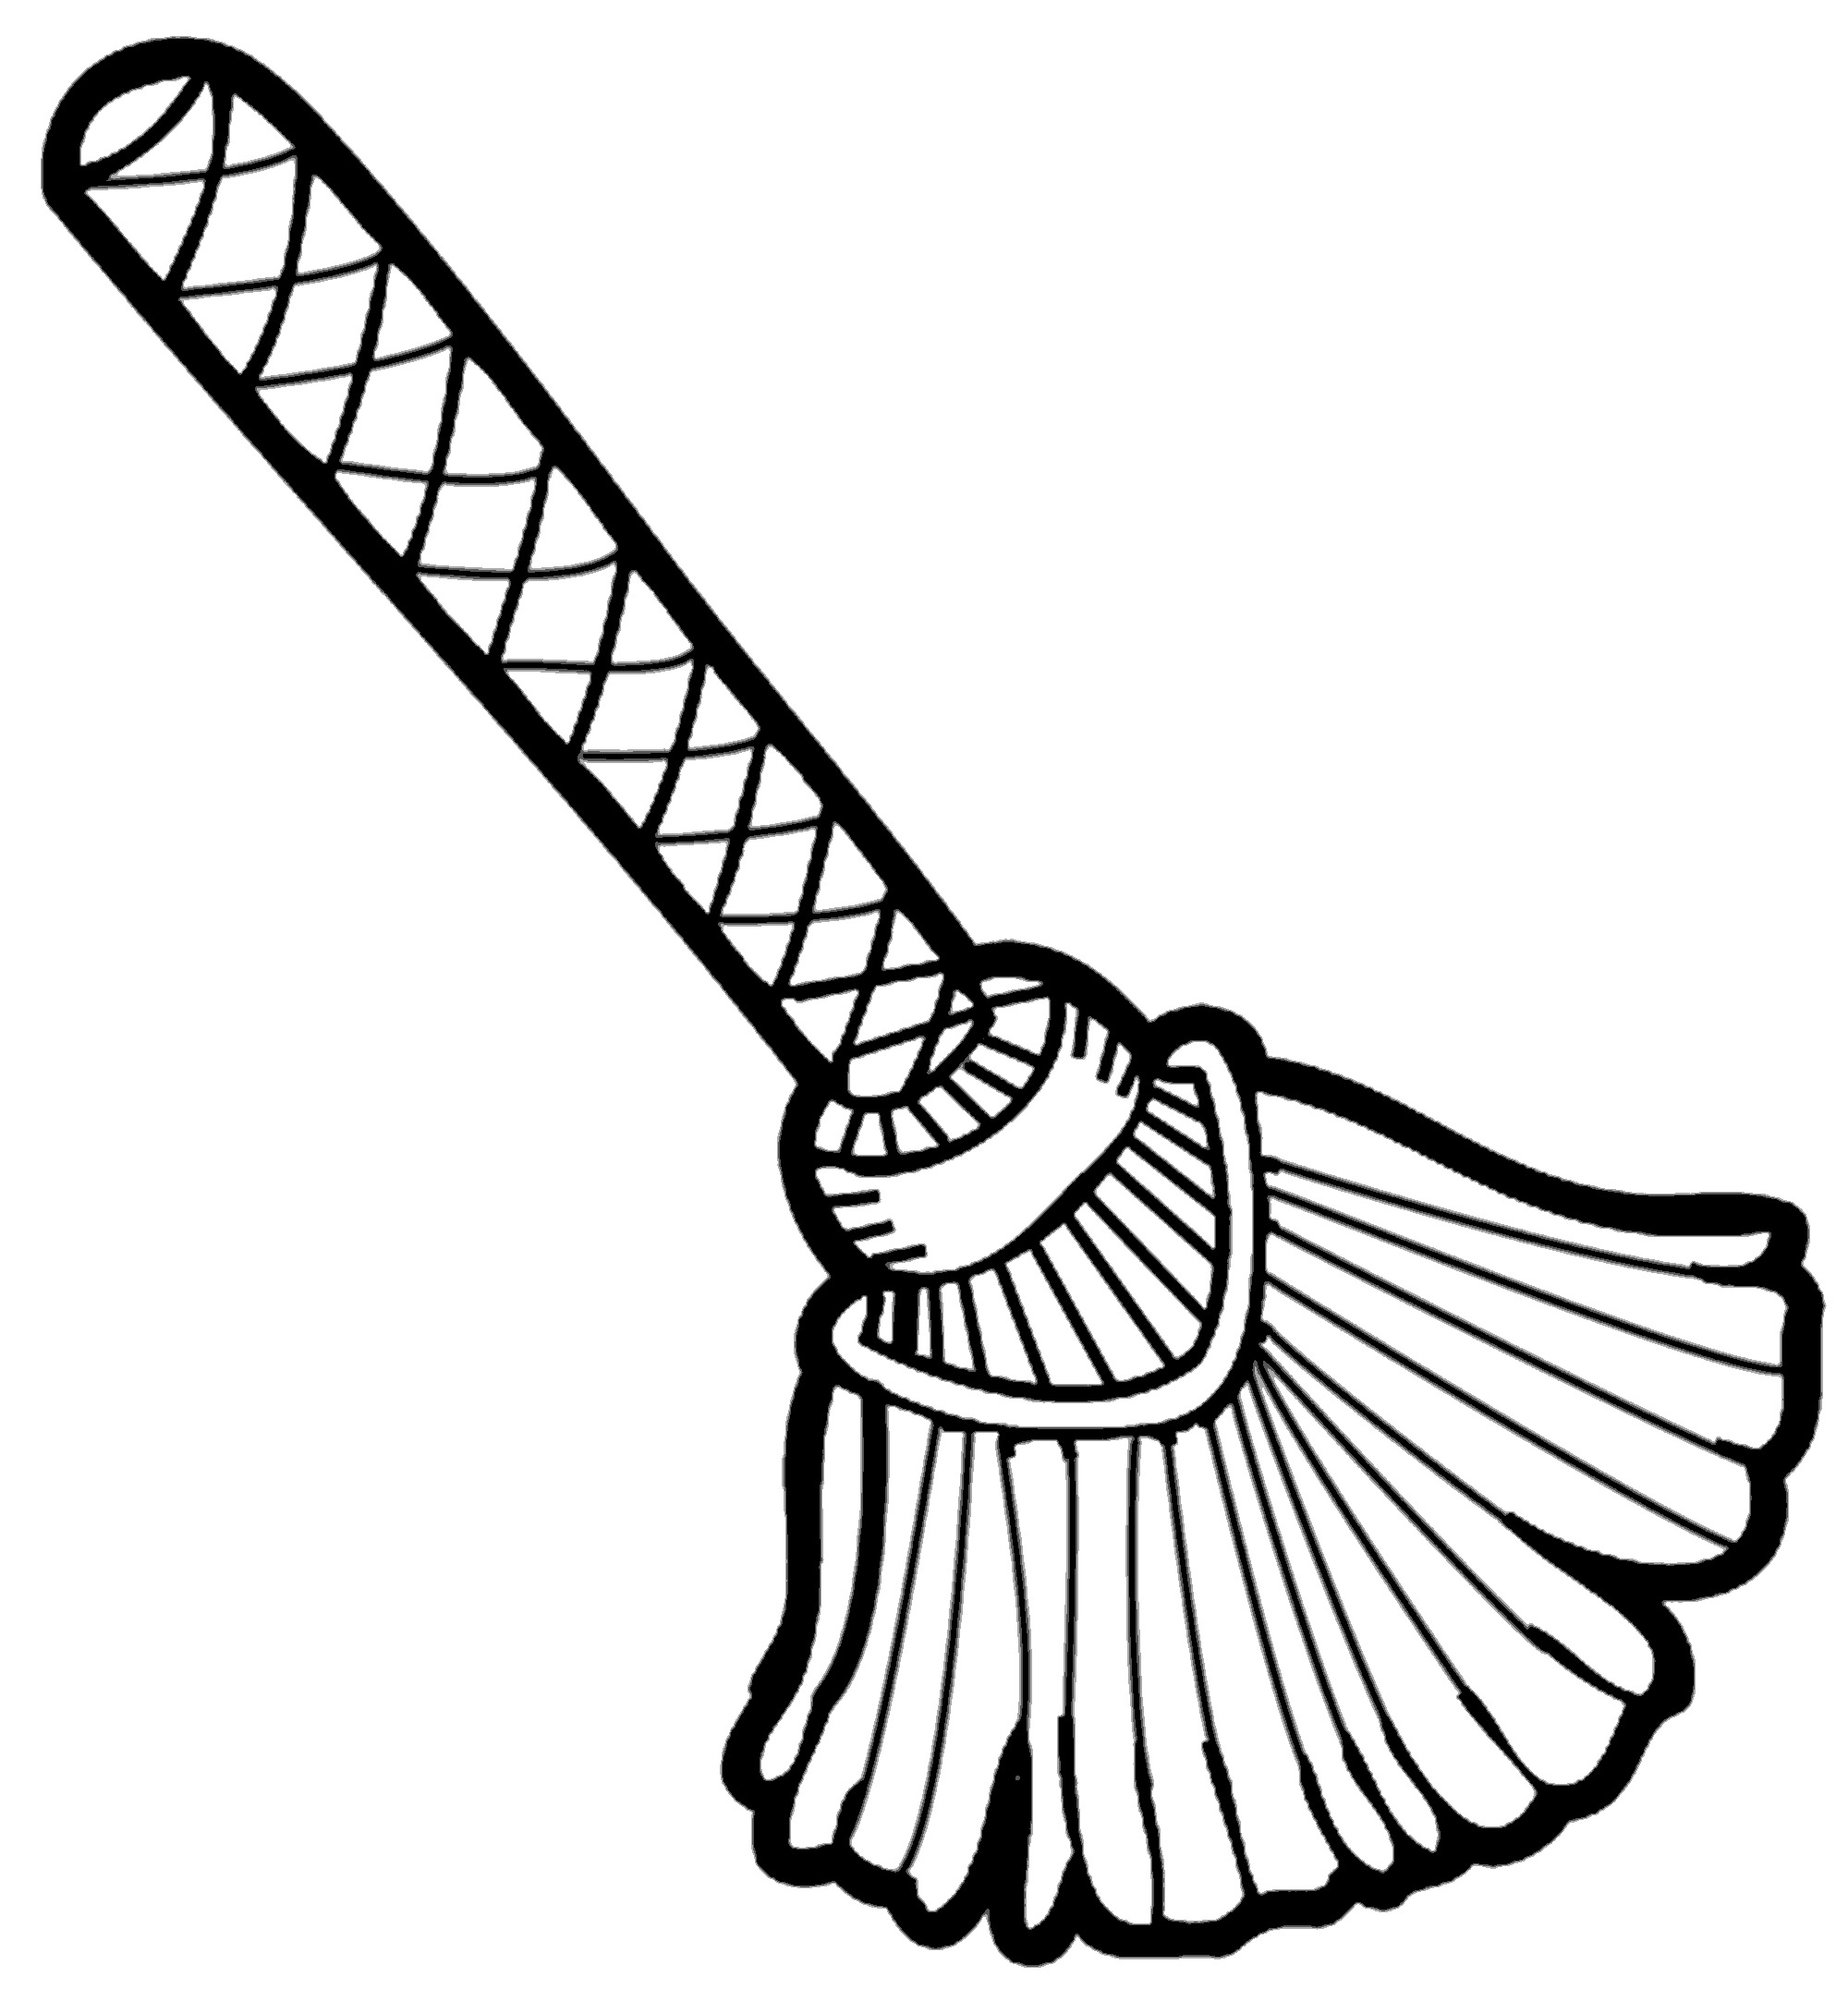 dust-up-clipart-broom-clipart-black-and-white-broom-003.jpg